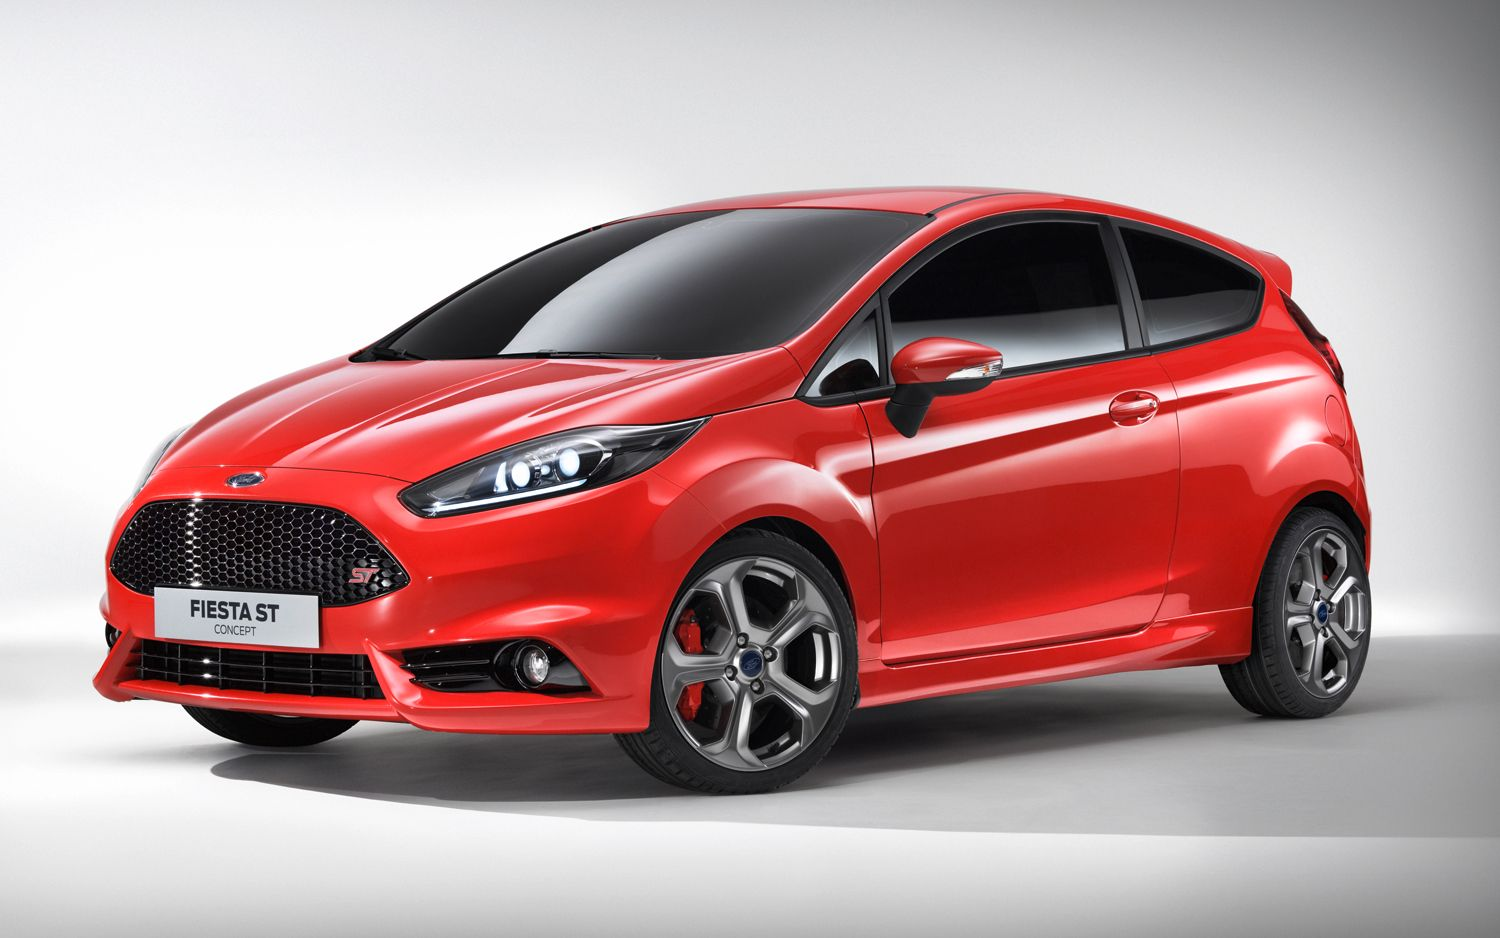 Ford Fiesta St 2014 Ford Fiesta St All About Cars